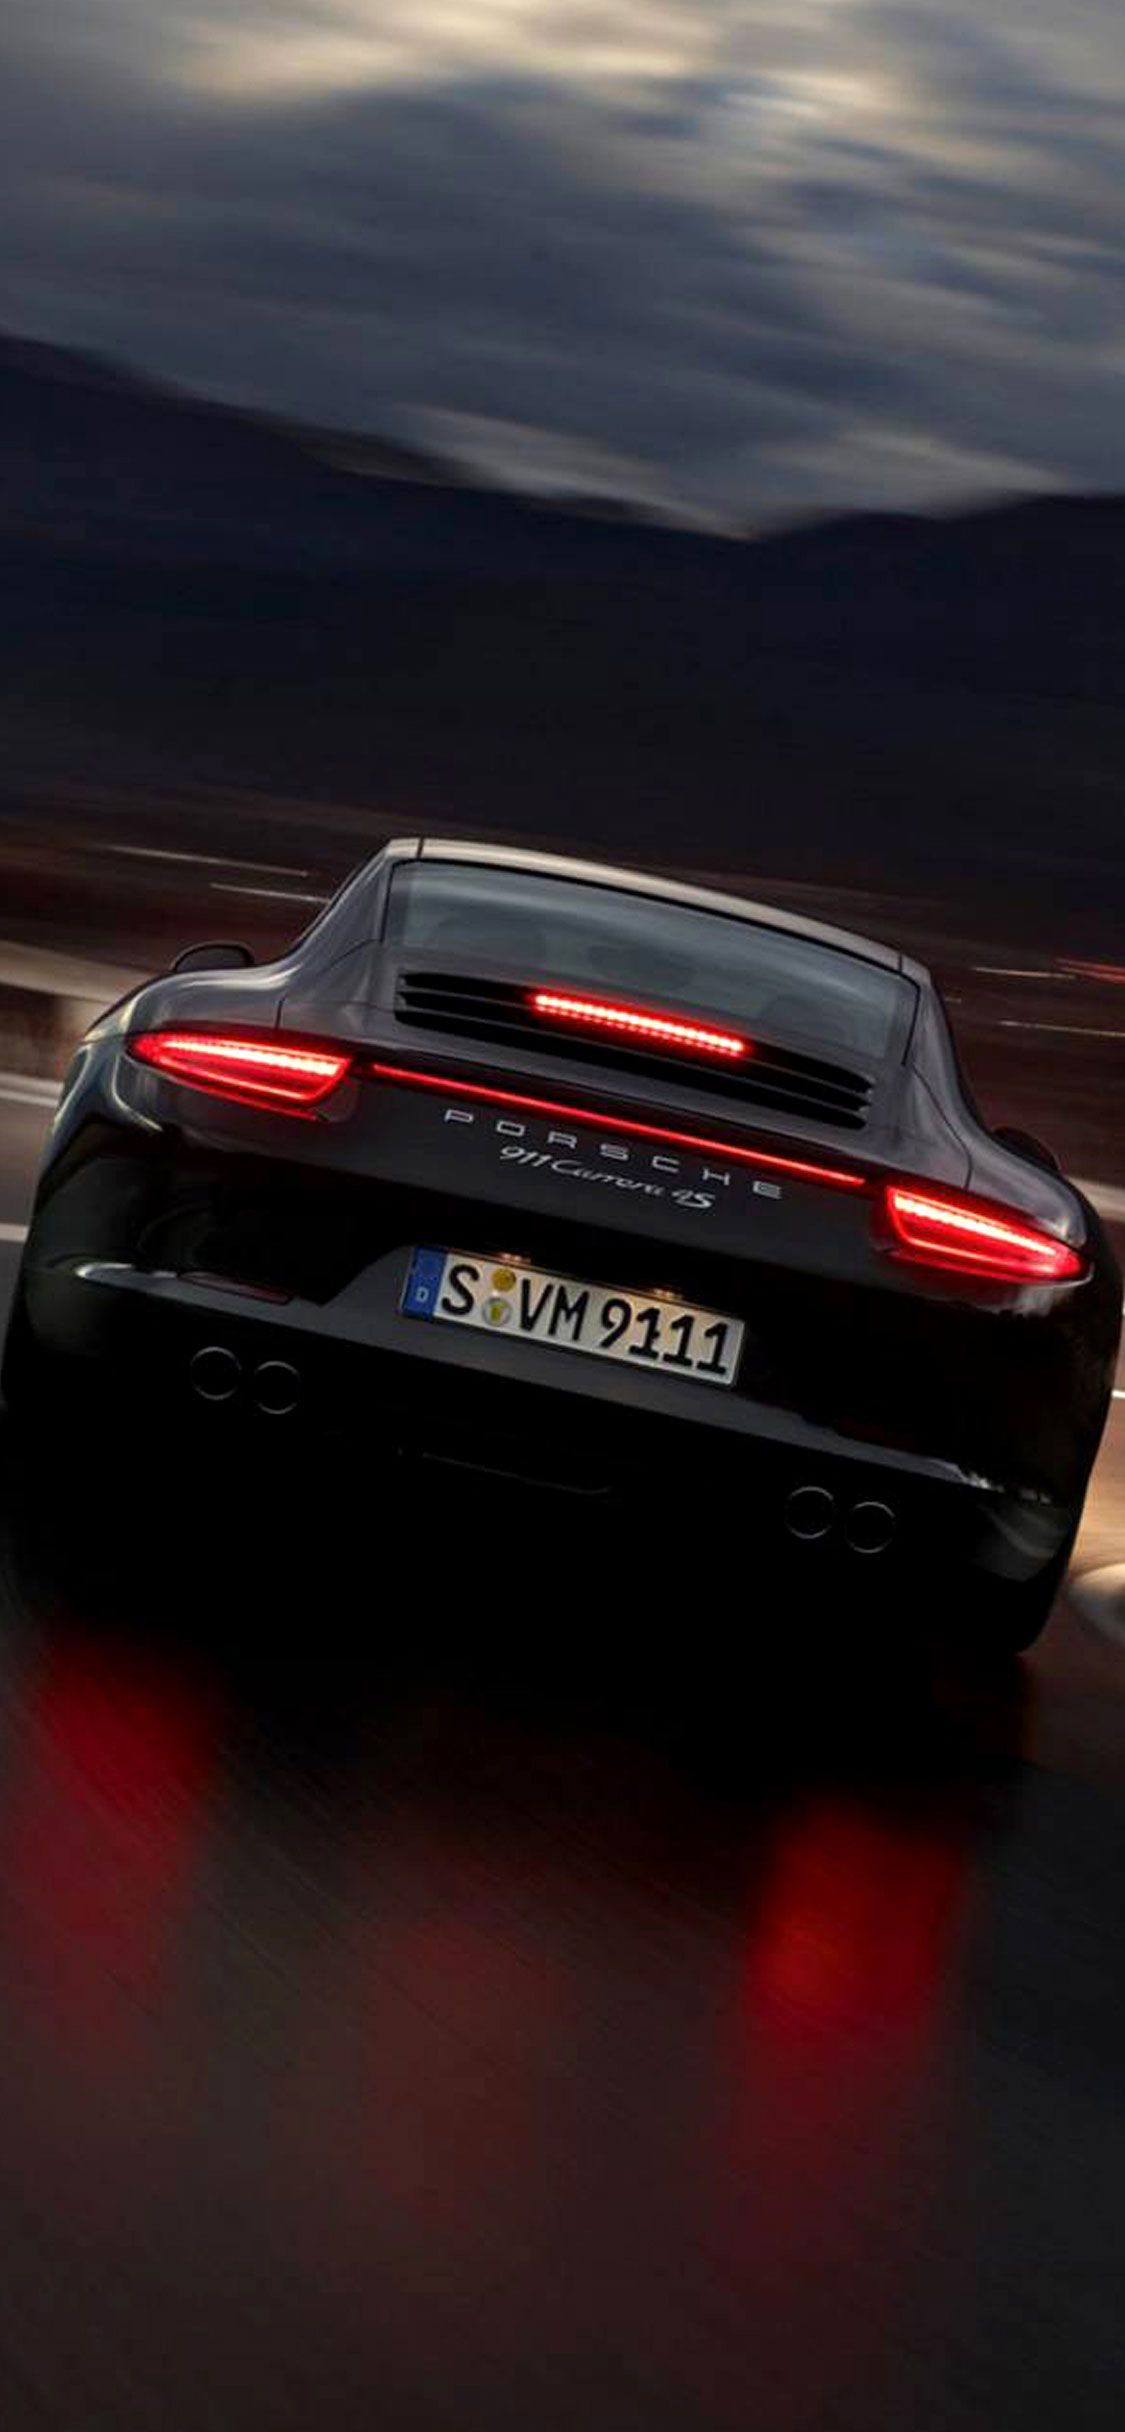 Best Porsche Wallpapers For Iphone X Ioswall Car Iphone Wallpaper Porsche Iphone Wallpaper